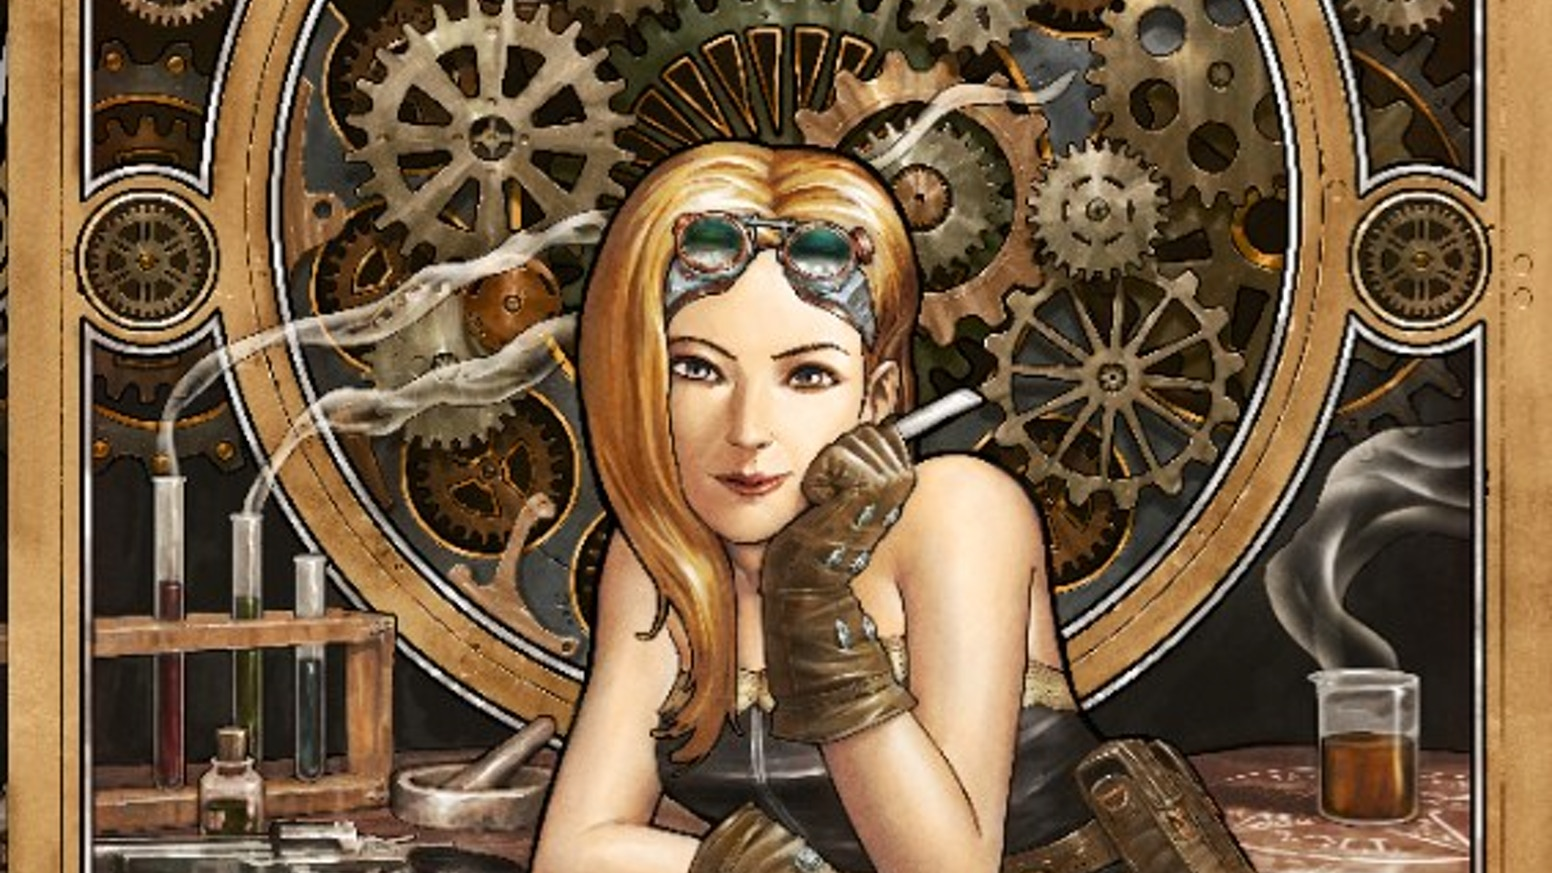 Clockwork: Dominion is a steampunk roleplaying game set in a Victorian world of gothic horror.